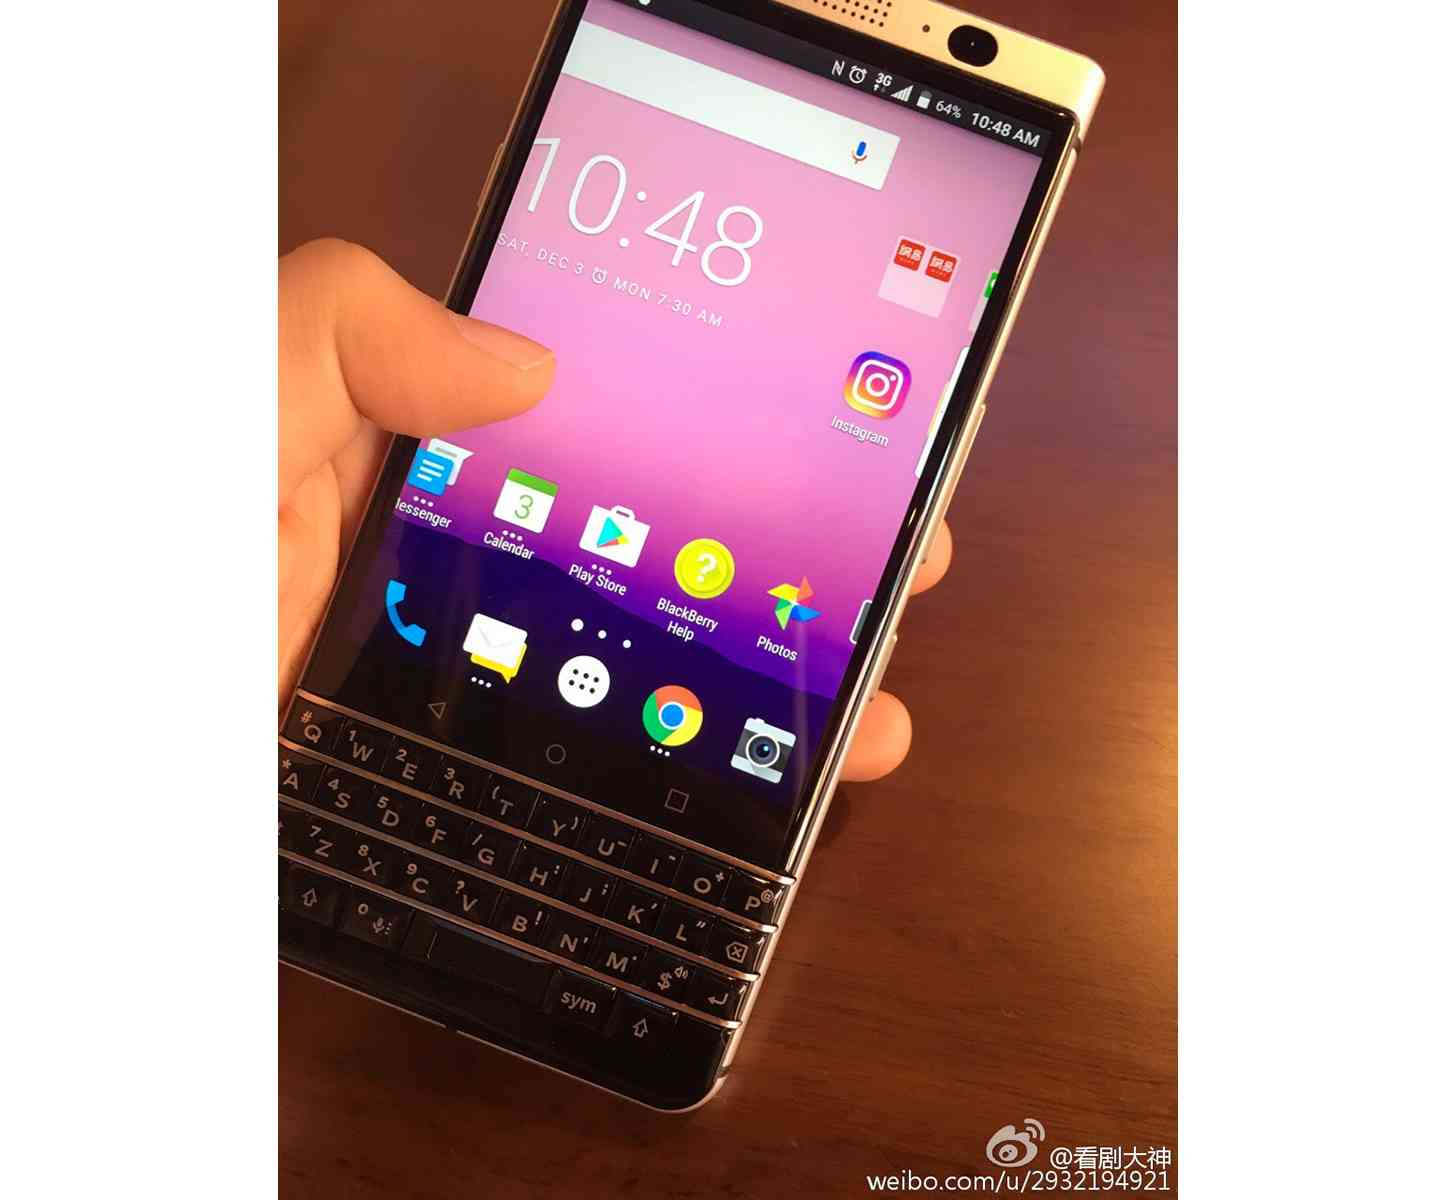 blackberry phones 2017 - photo #6